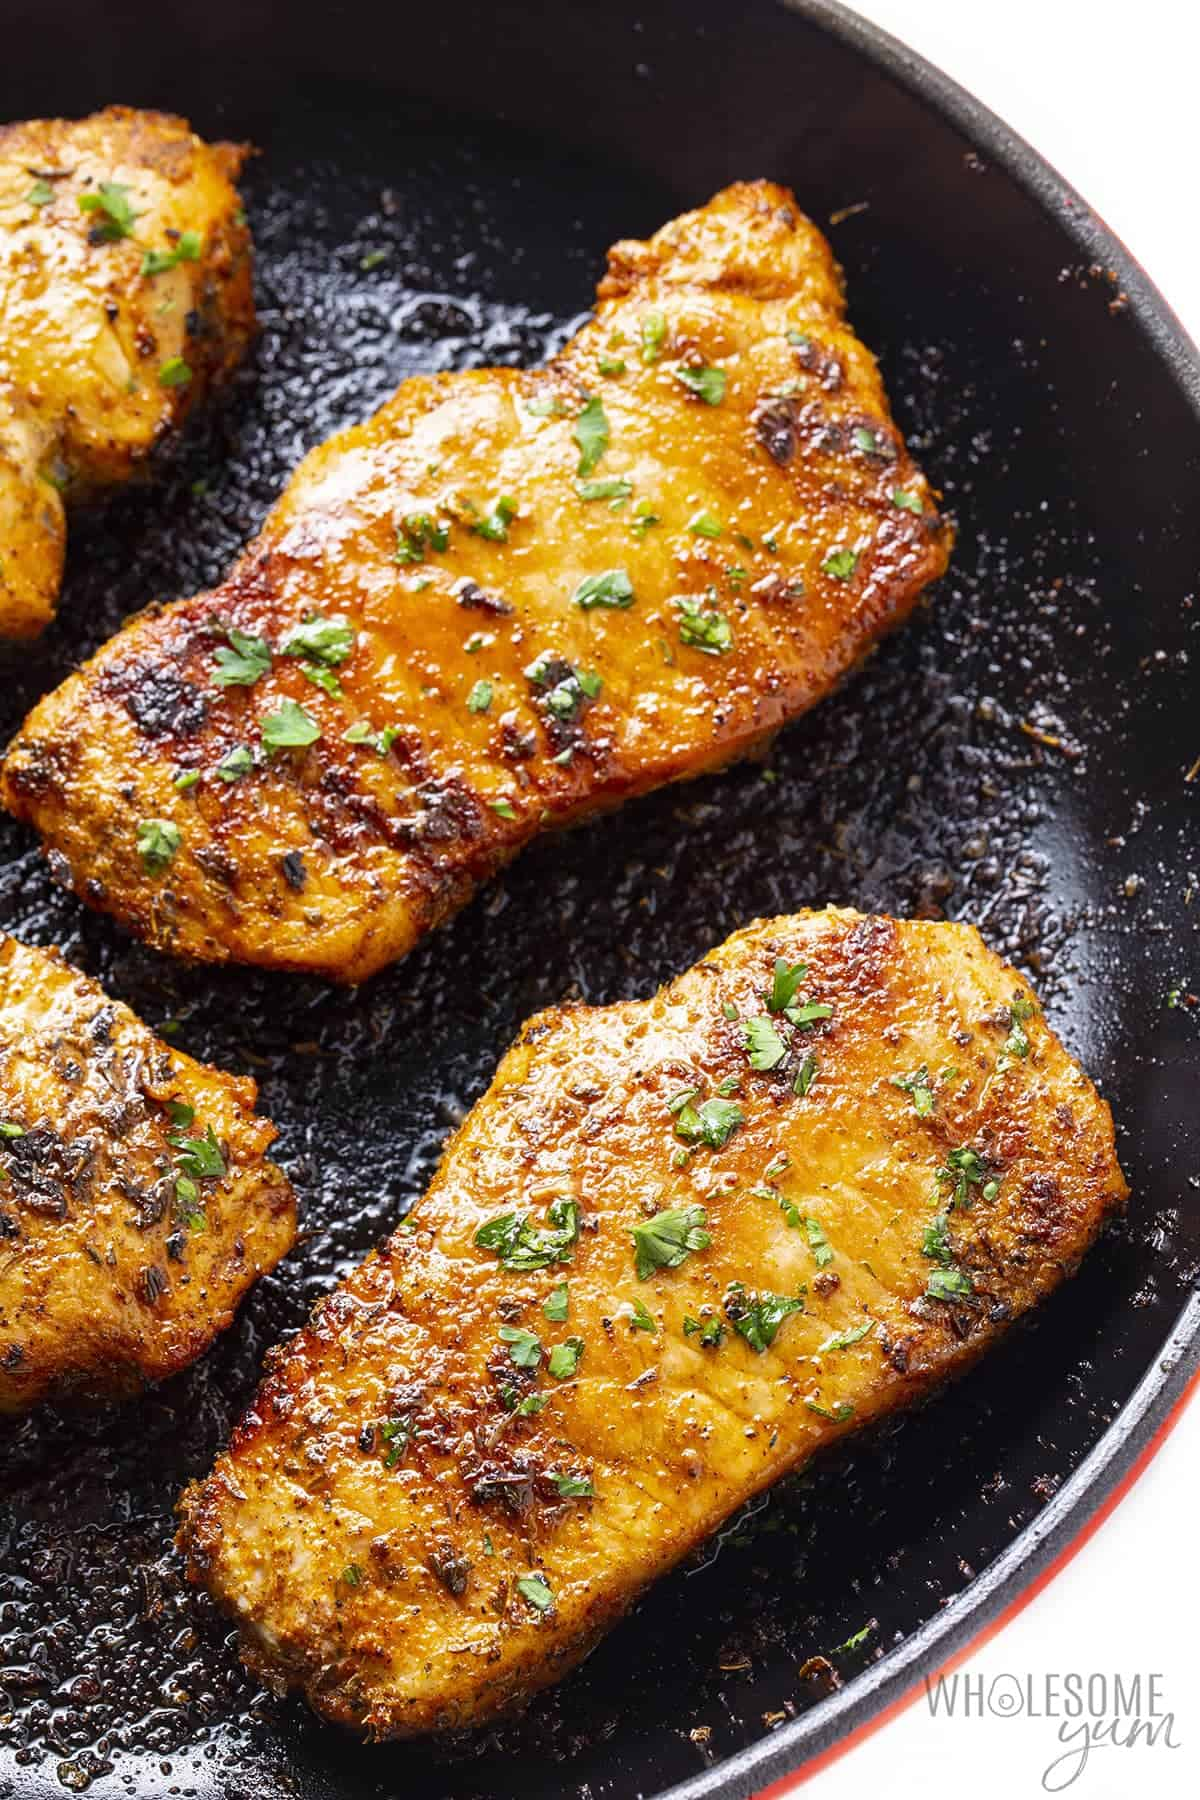 Pan seared pork chops in a cast iron skillet